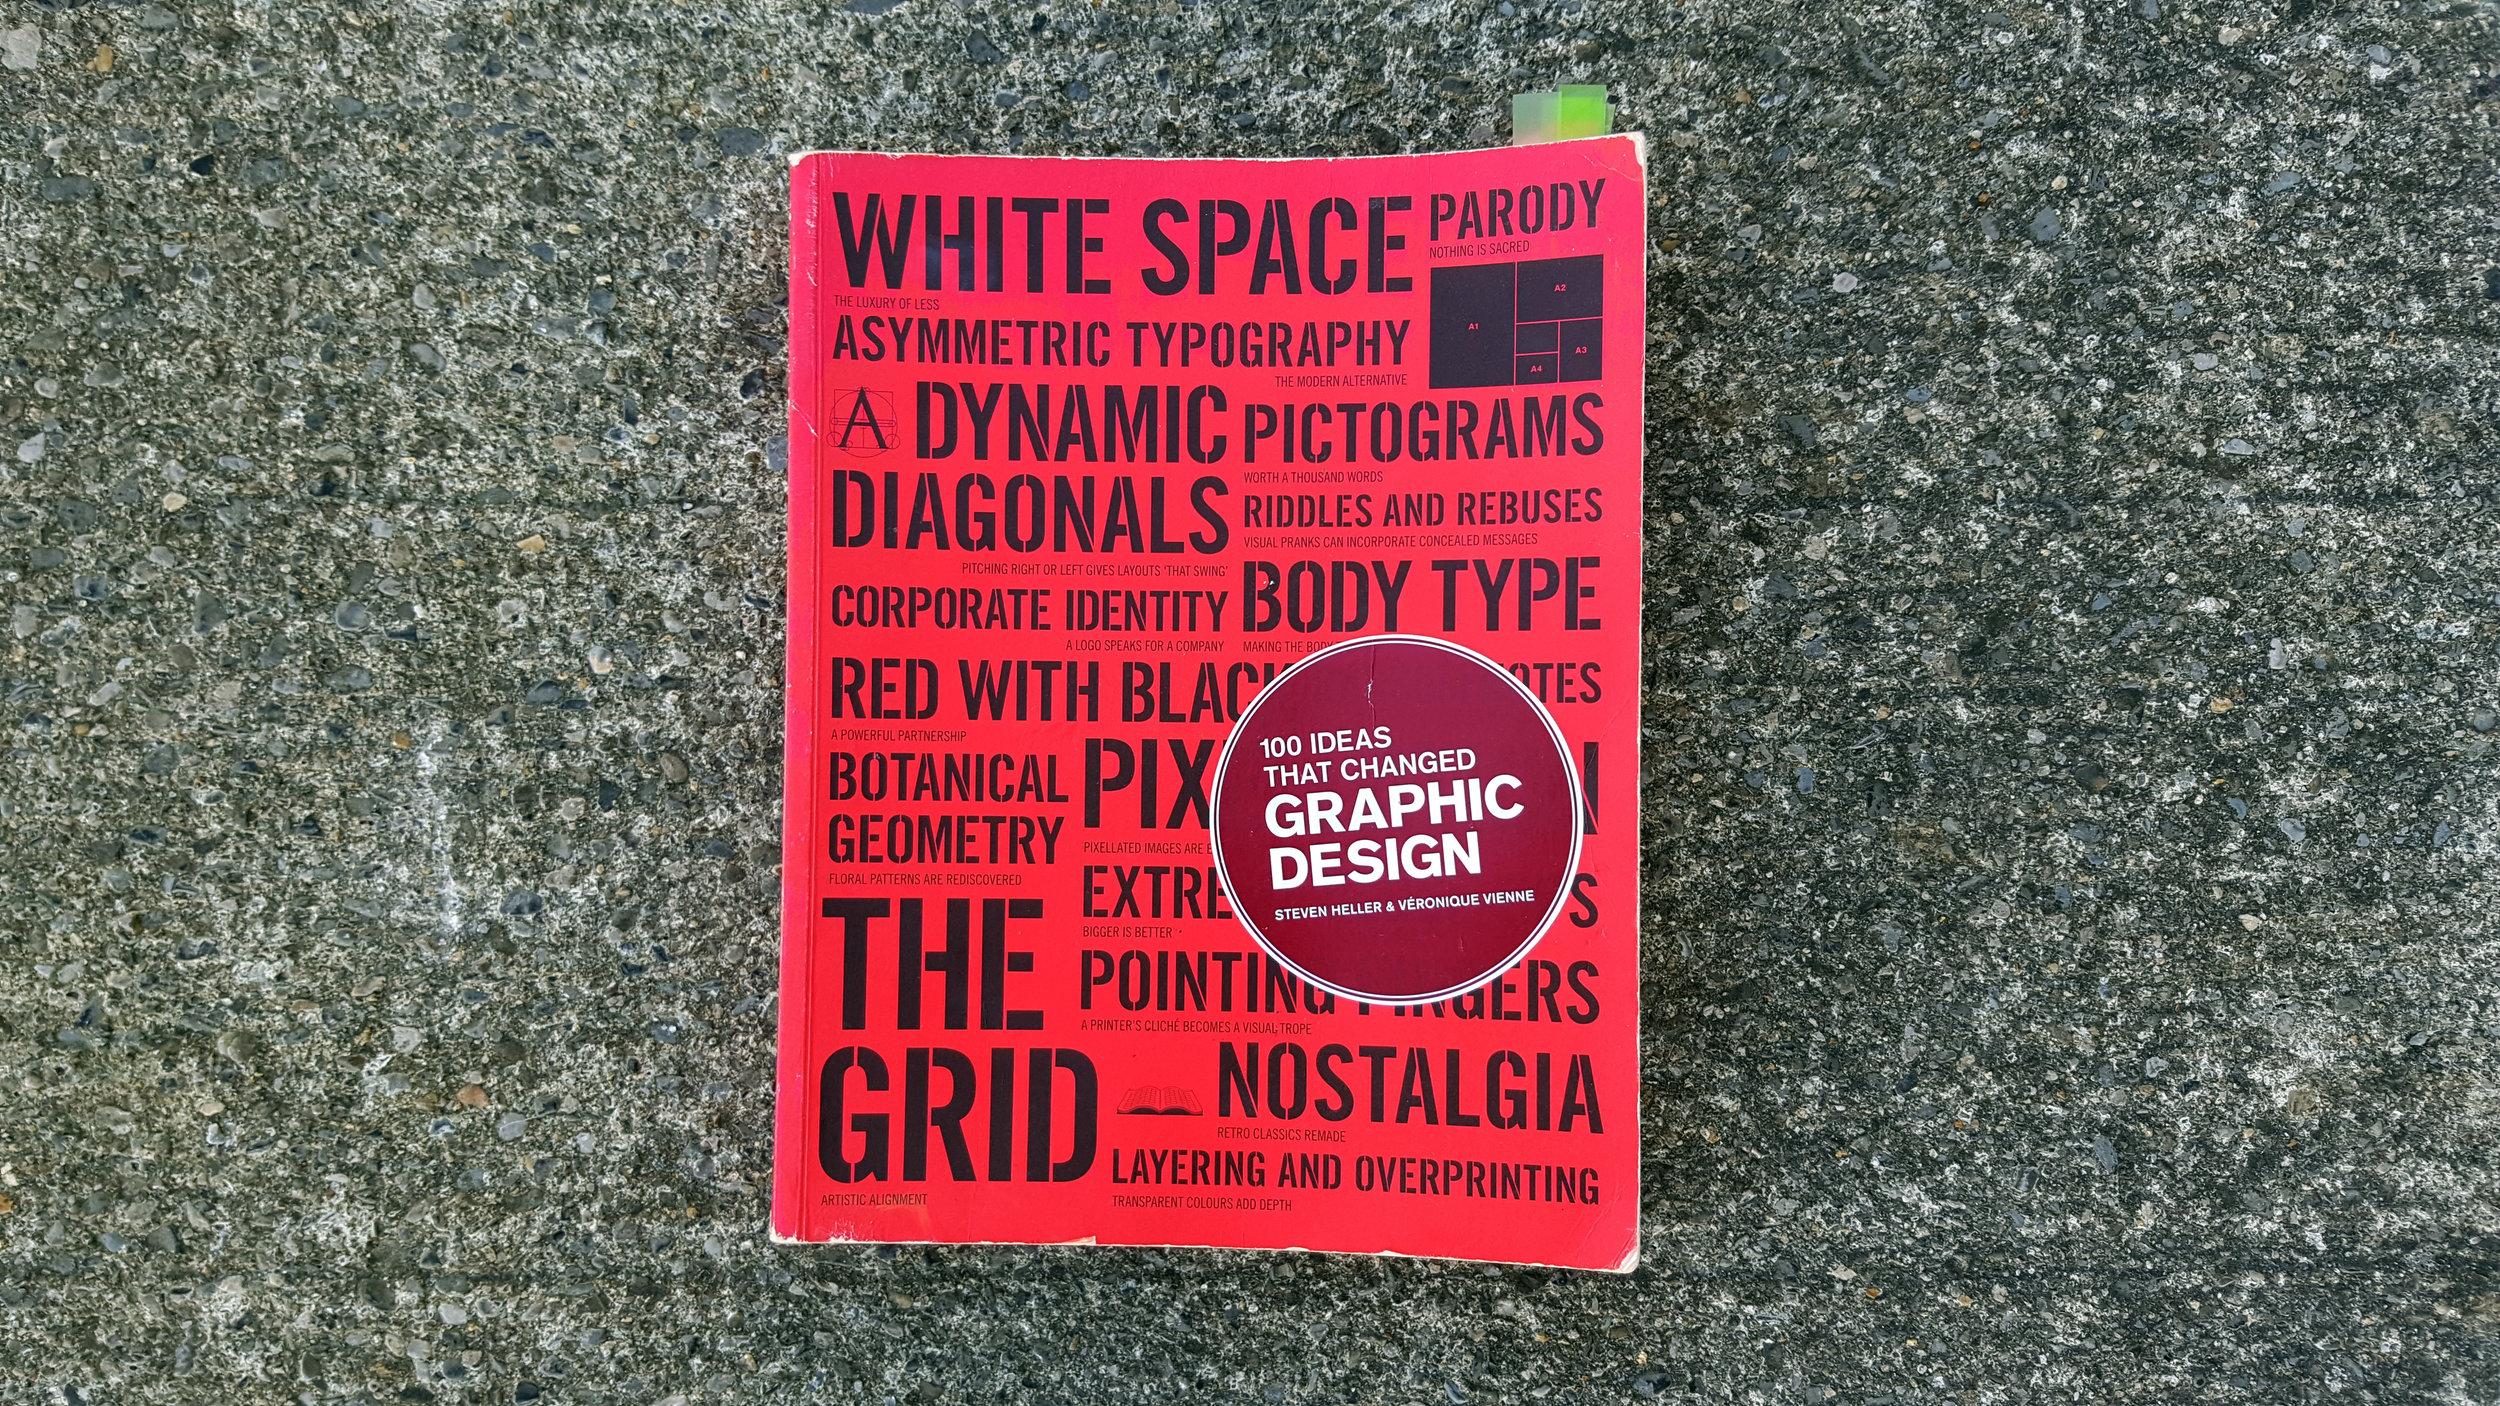 '100 Ideas That Changed Graphic Design'